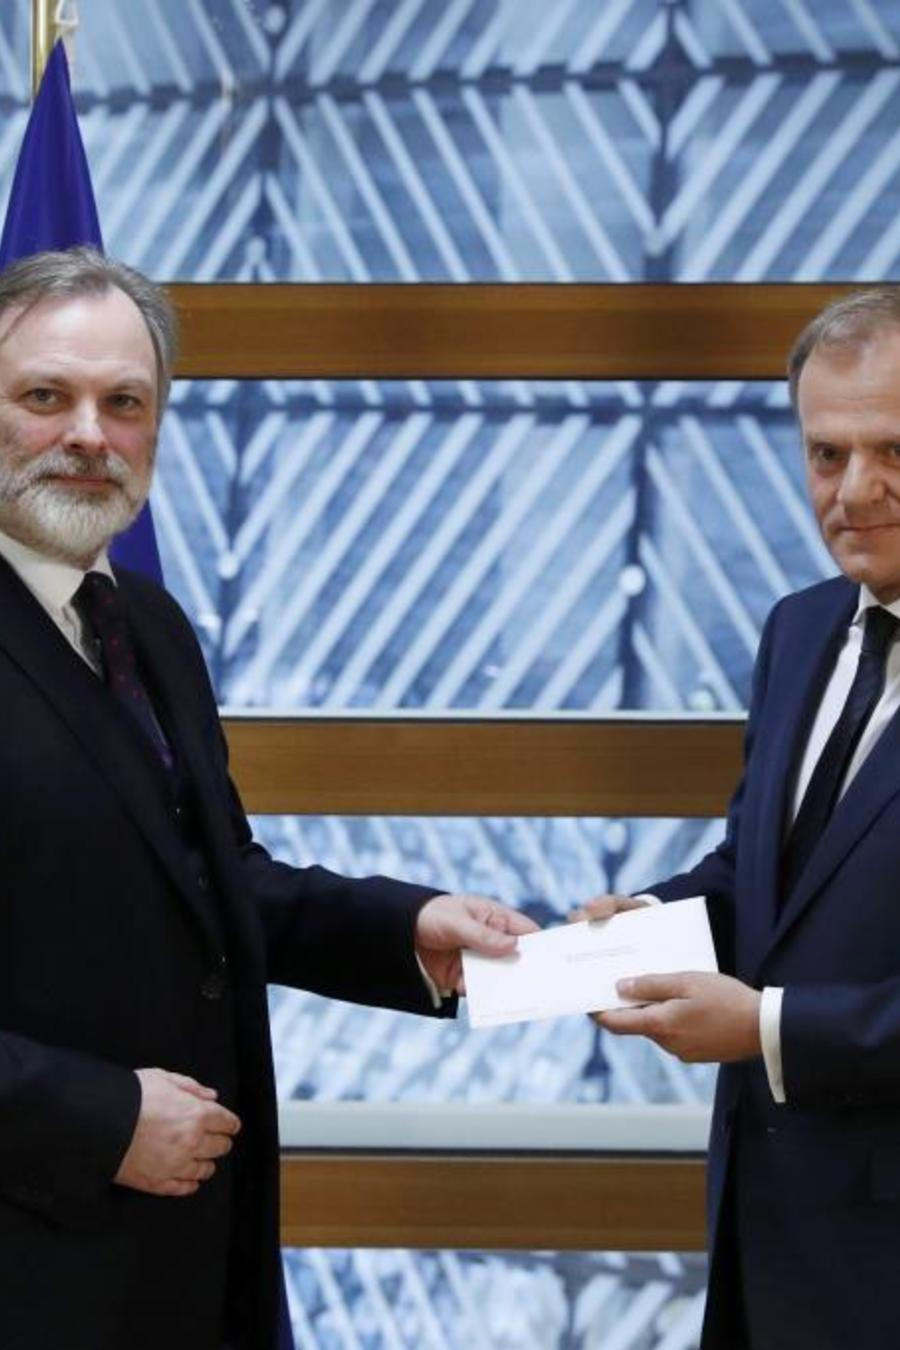 Britain's permanent representative to the European Union Tim Barrow delivers British Prime Minister Theresa May's Brexit letter to EU Council President Donald Tusk in Brussels